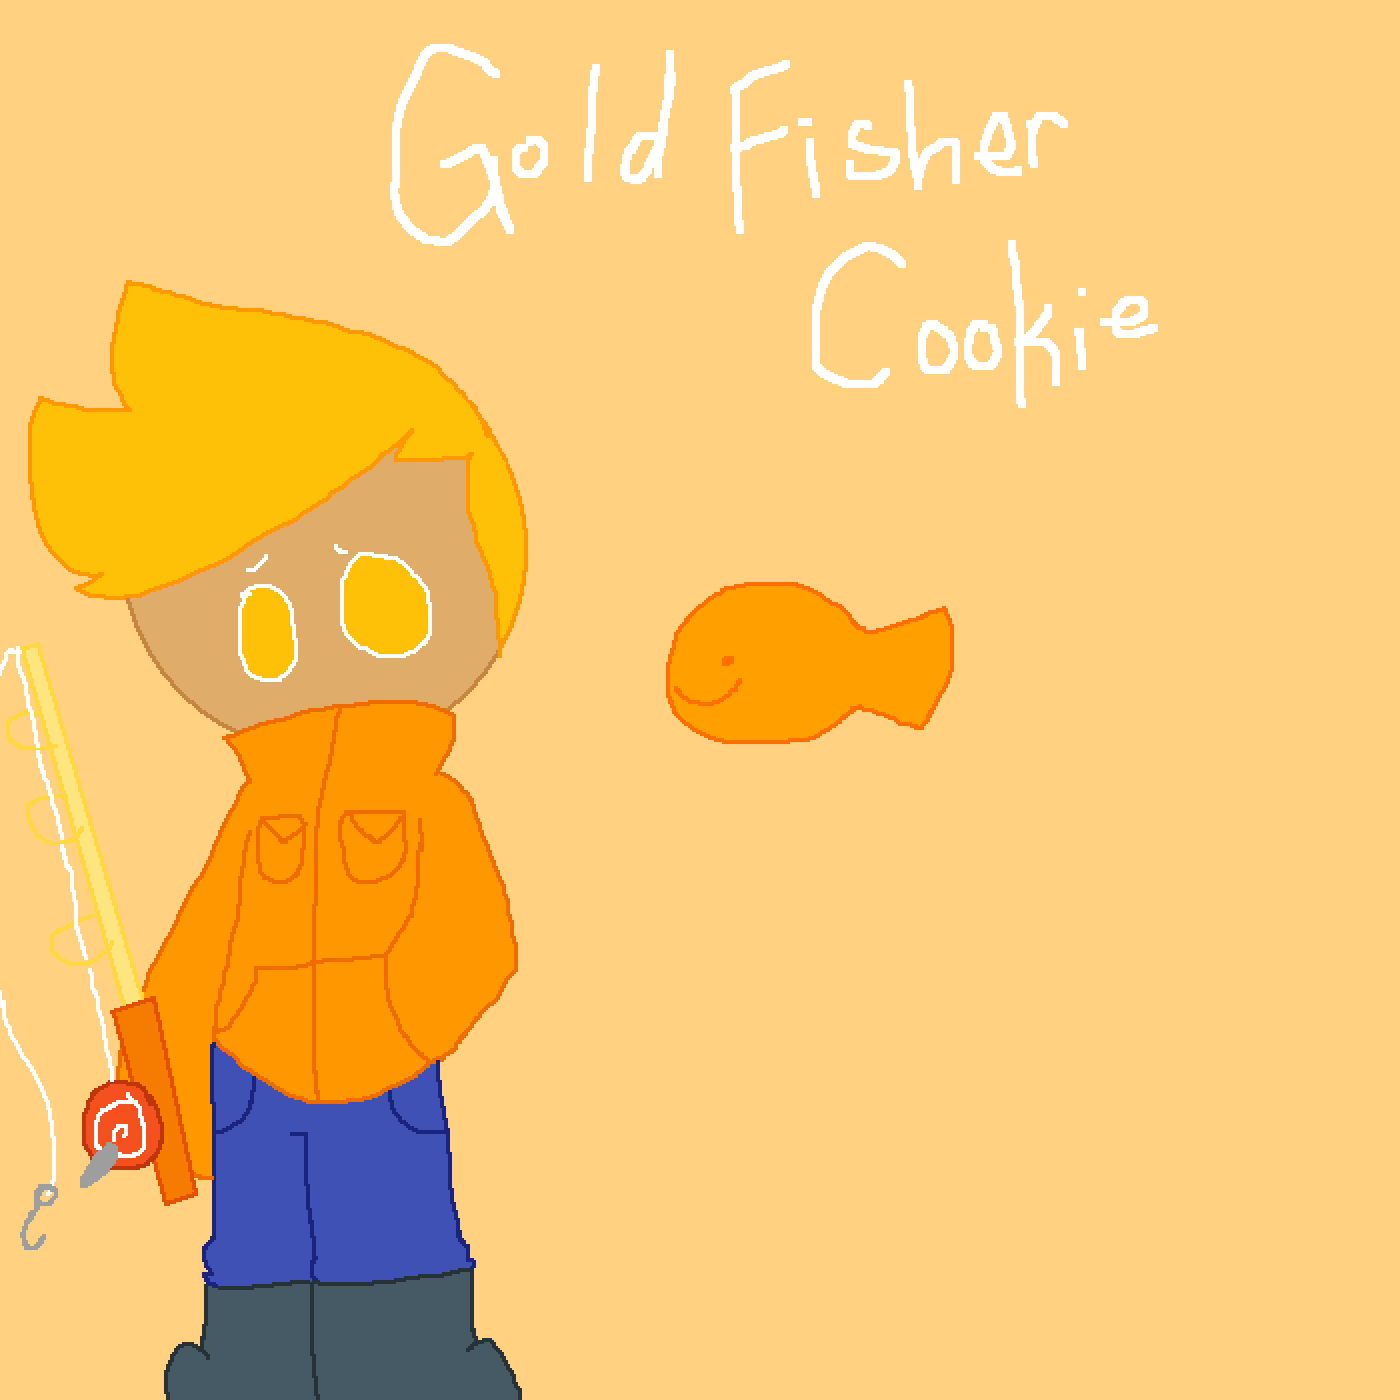 Gold Fisher Cookie by Vessel